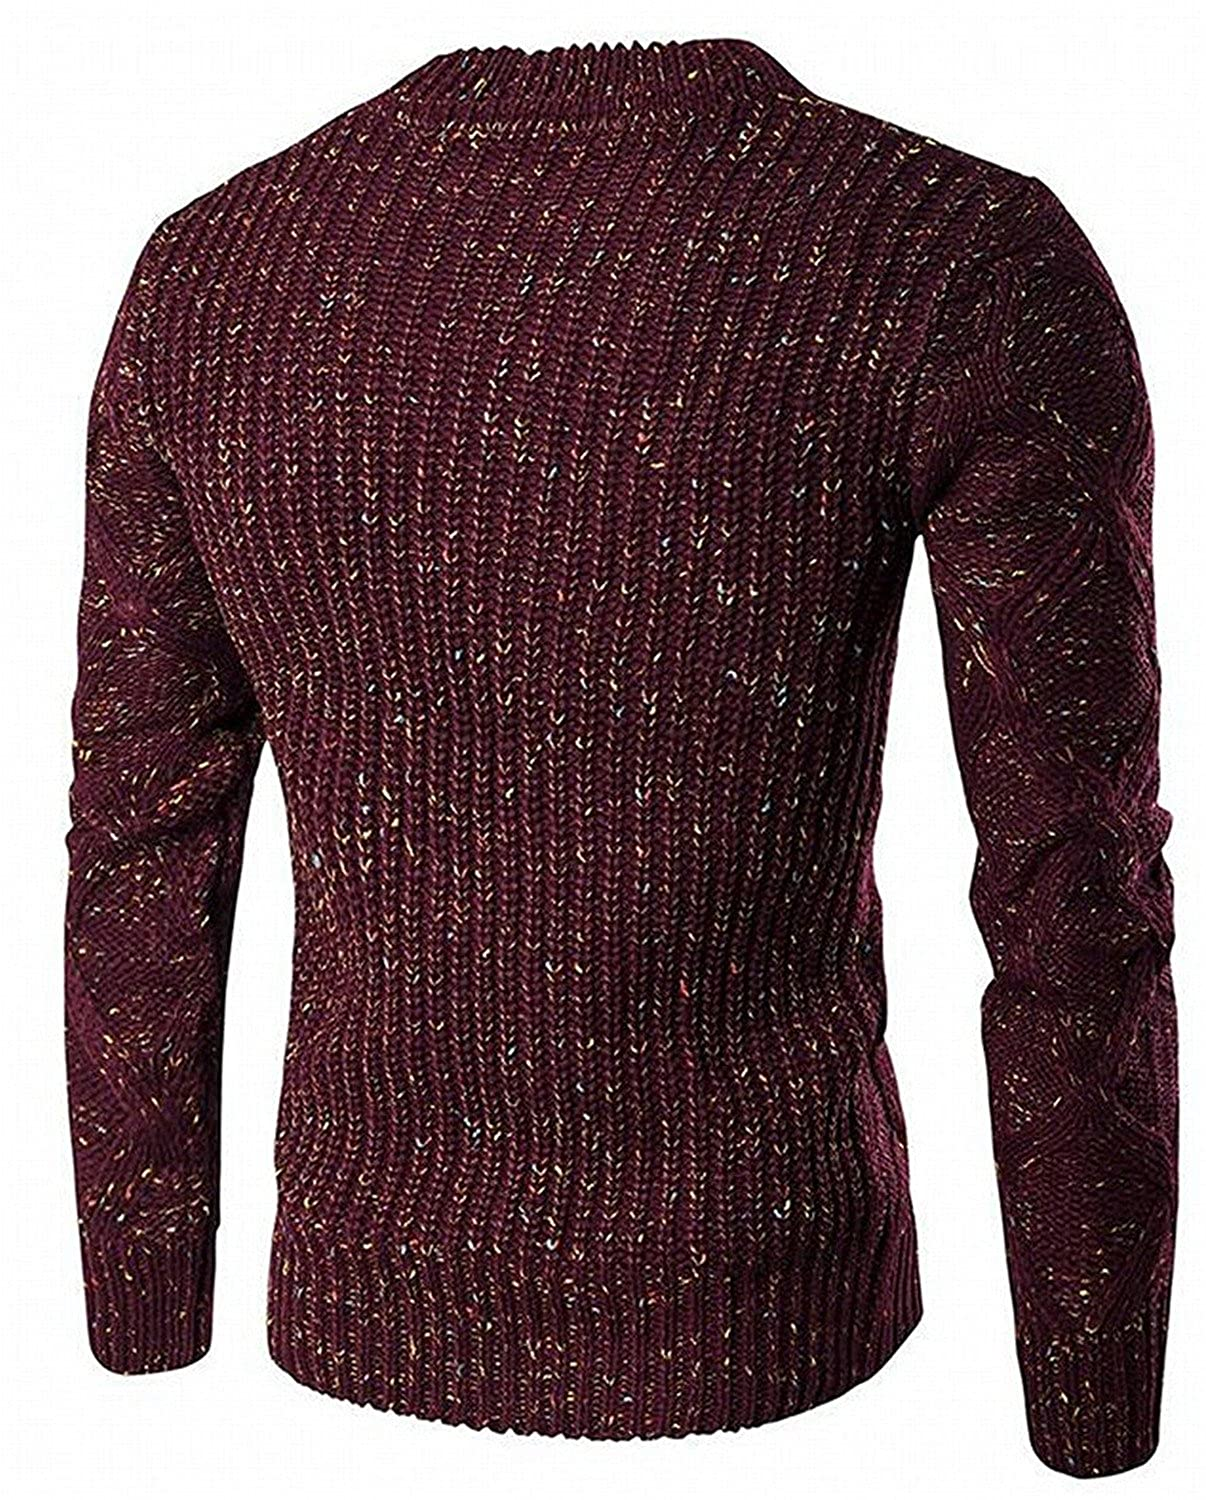 Kaured Stylist Mens Mixed Color Pullover Cable-Knit Sweater